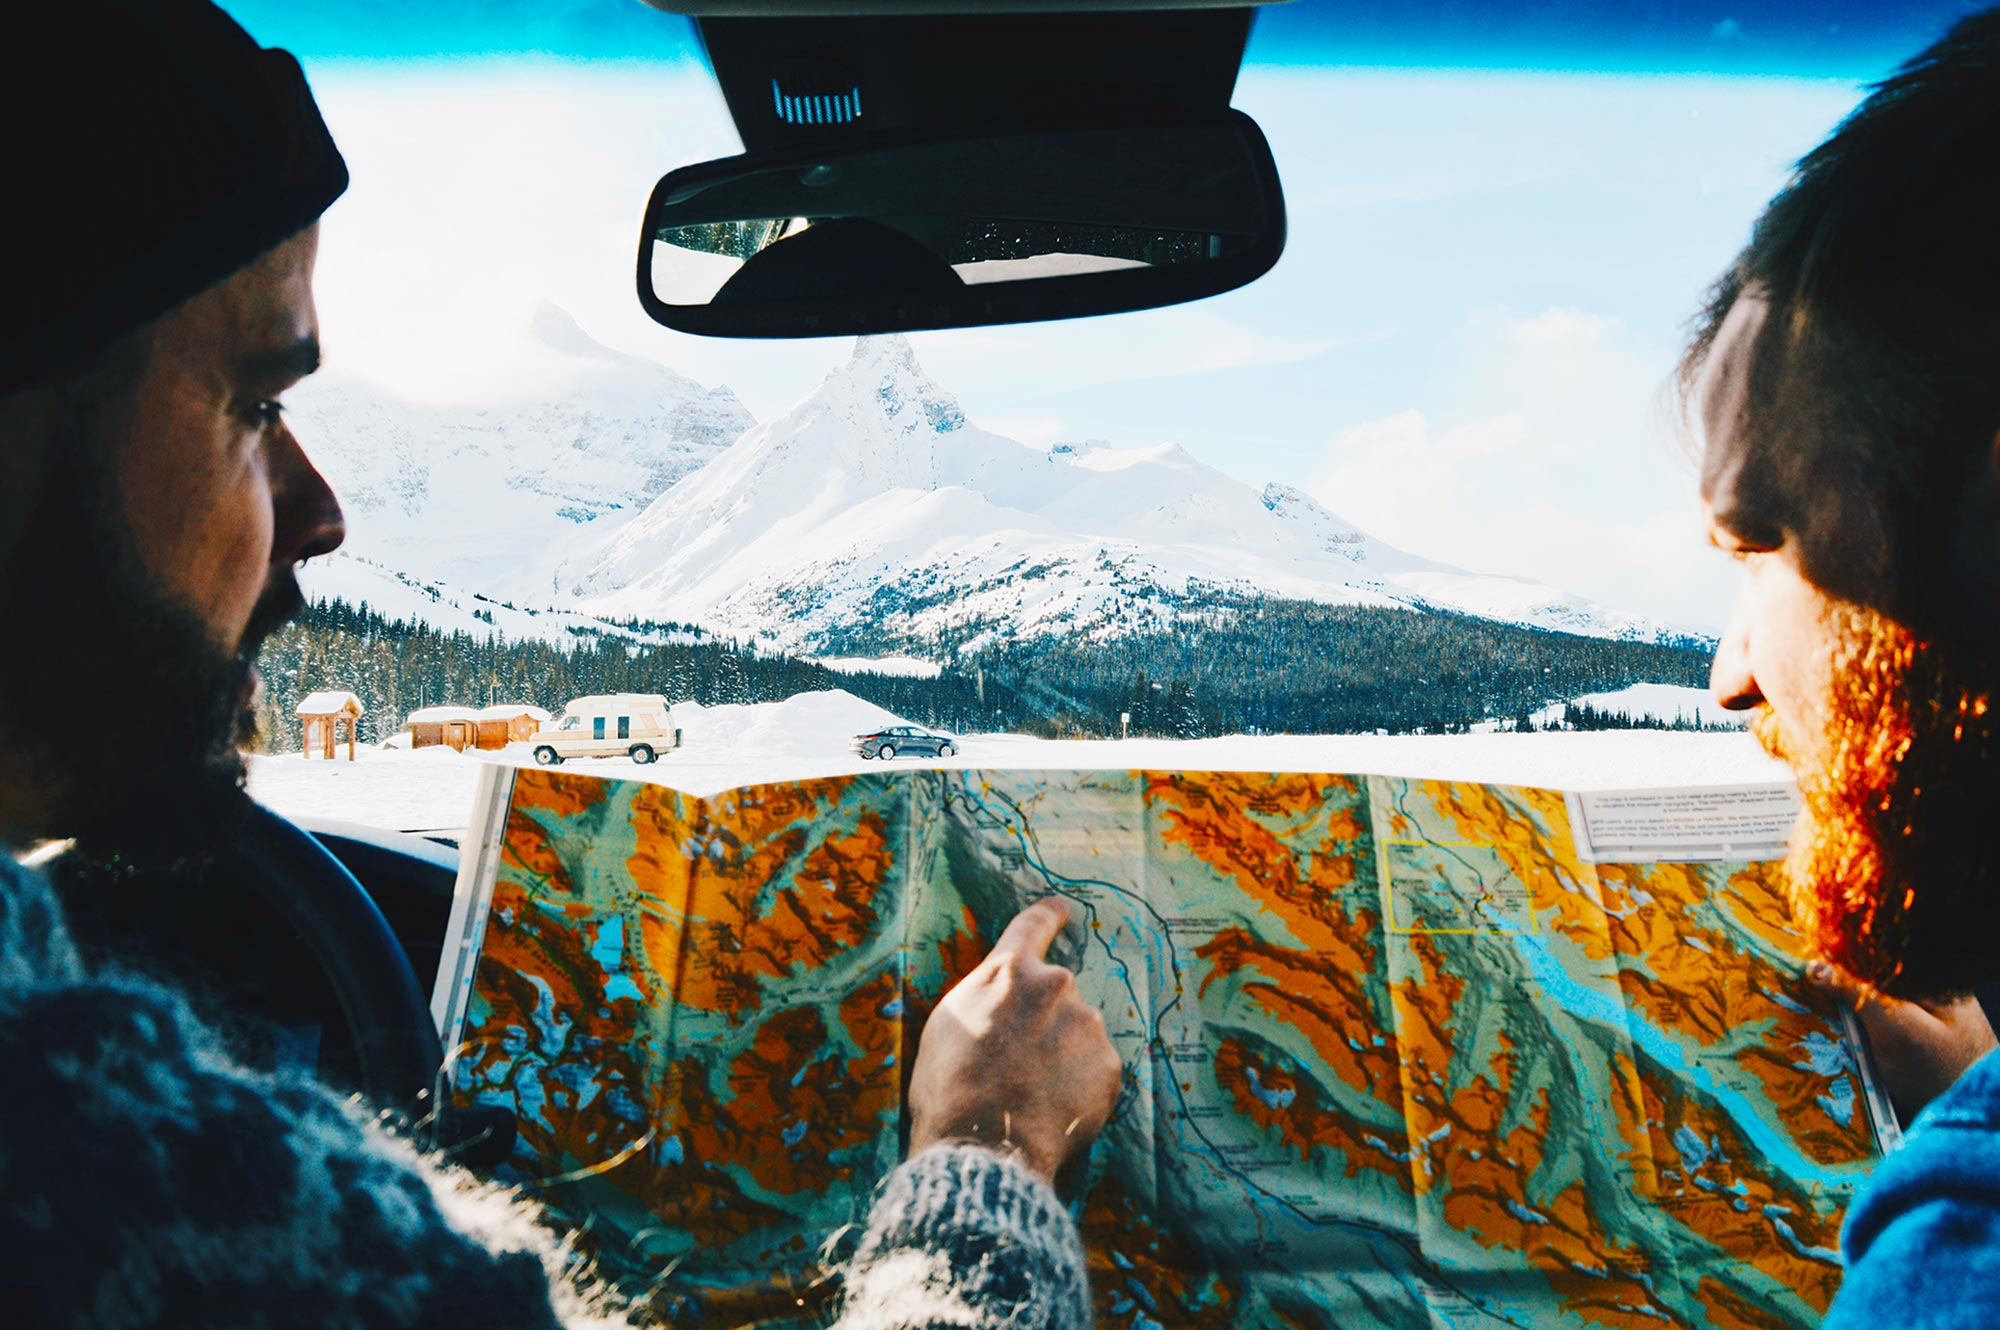 Winter Road Trip Alberta Highlights Kanadische Rocky Mountains Winter Road Trip Alberta Highlights Canadian Rocky Mountains © Coupleofmen.com